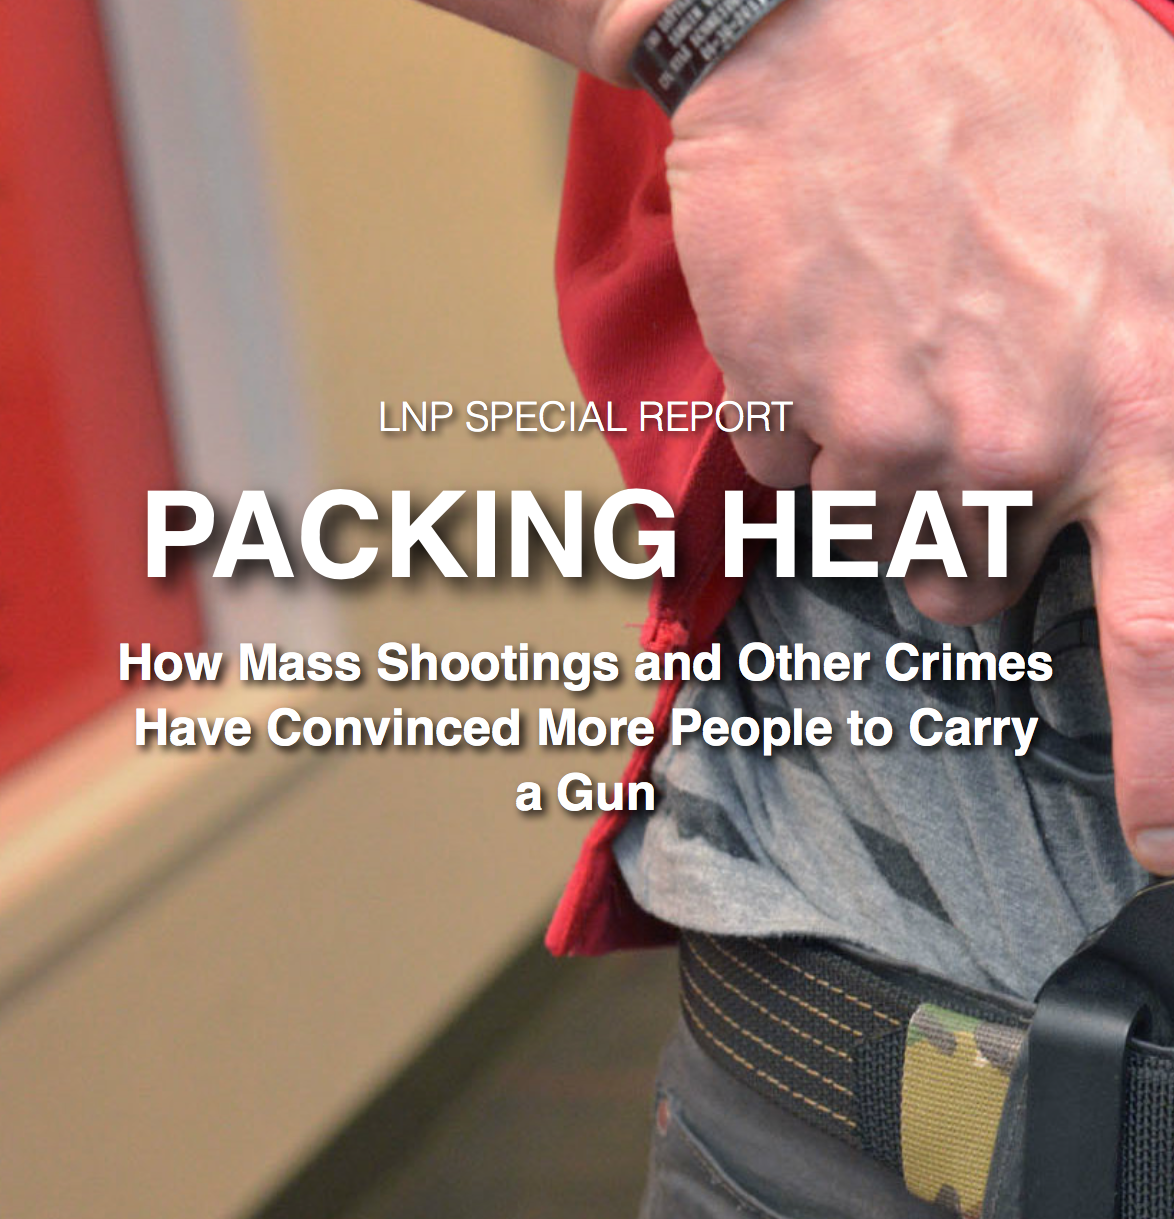 lancasteronline Special Report on Concealed Carry